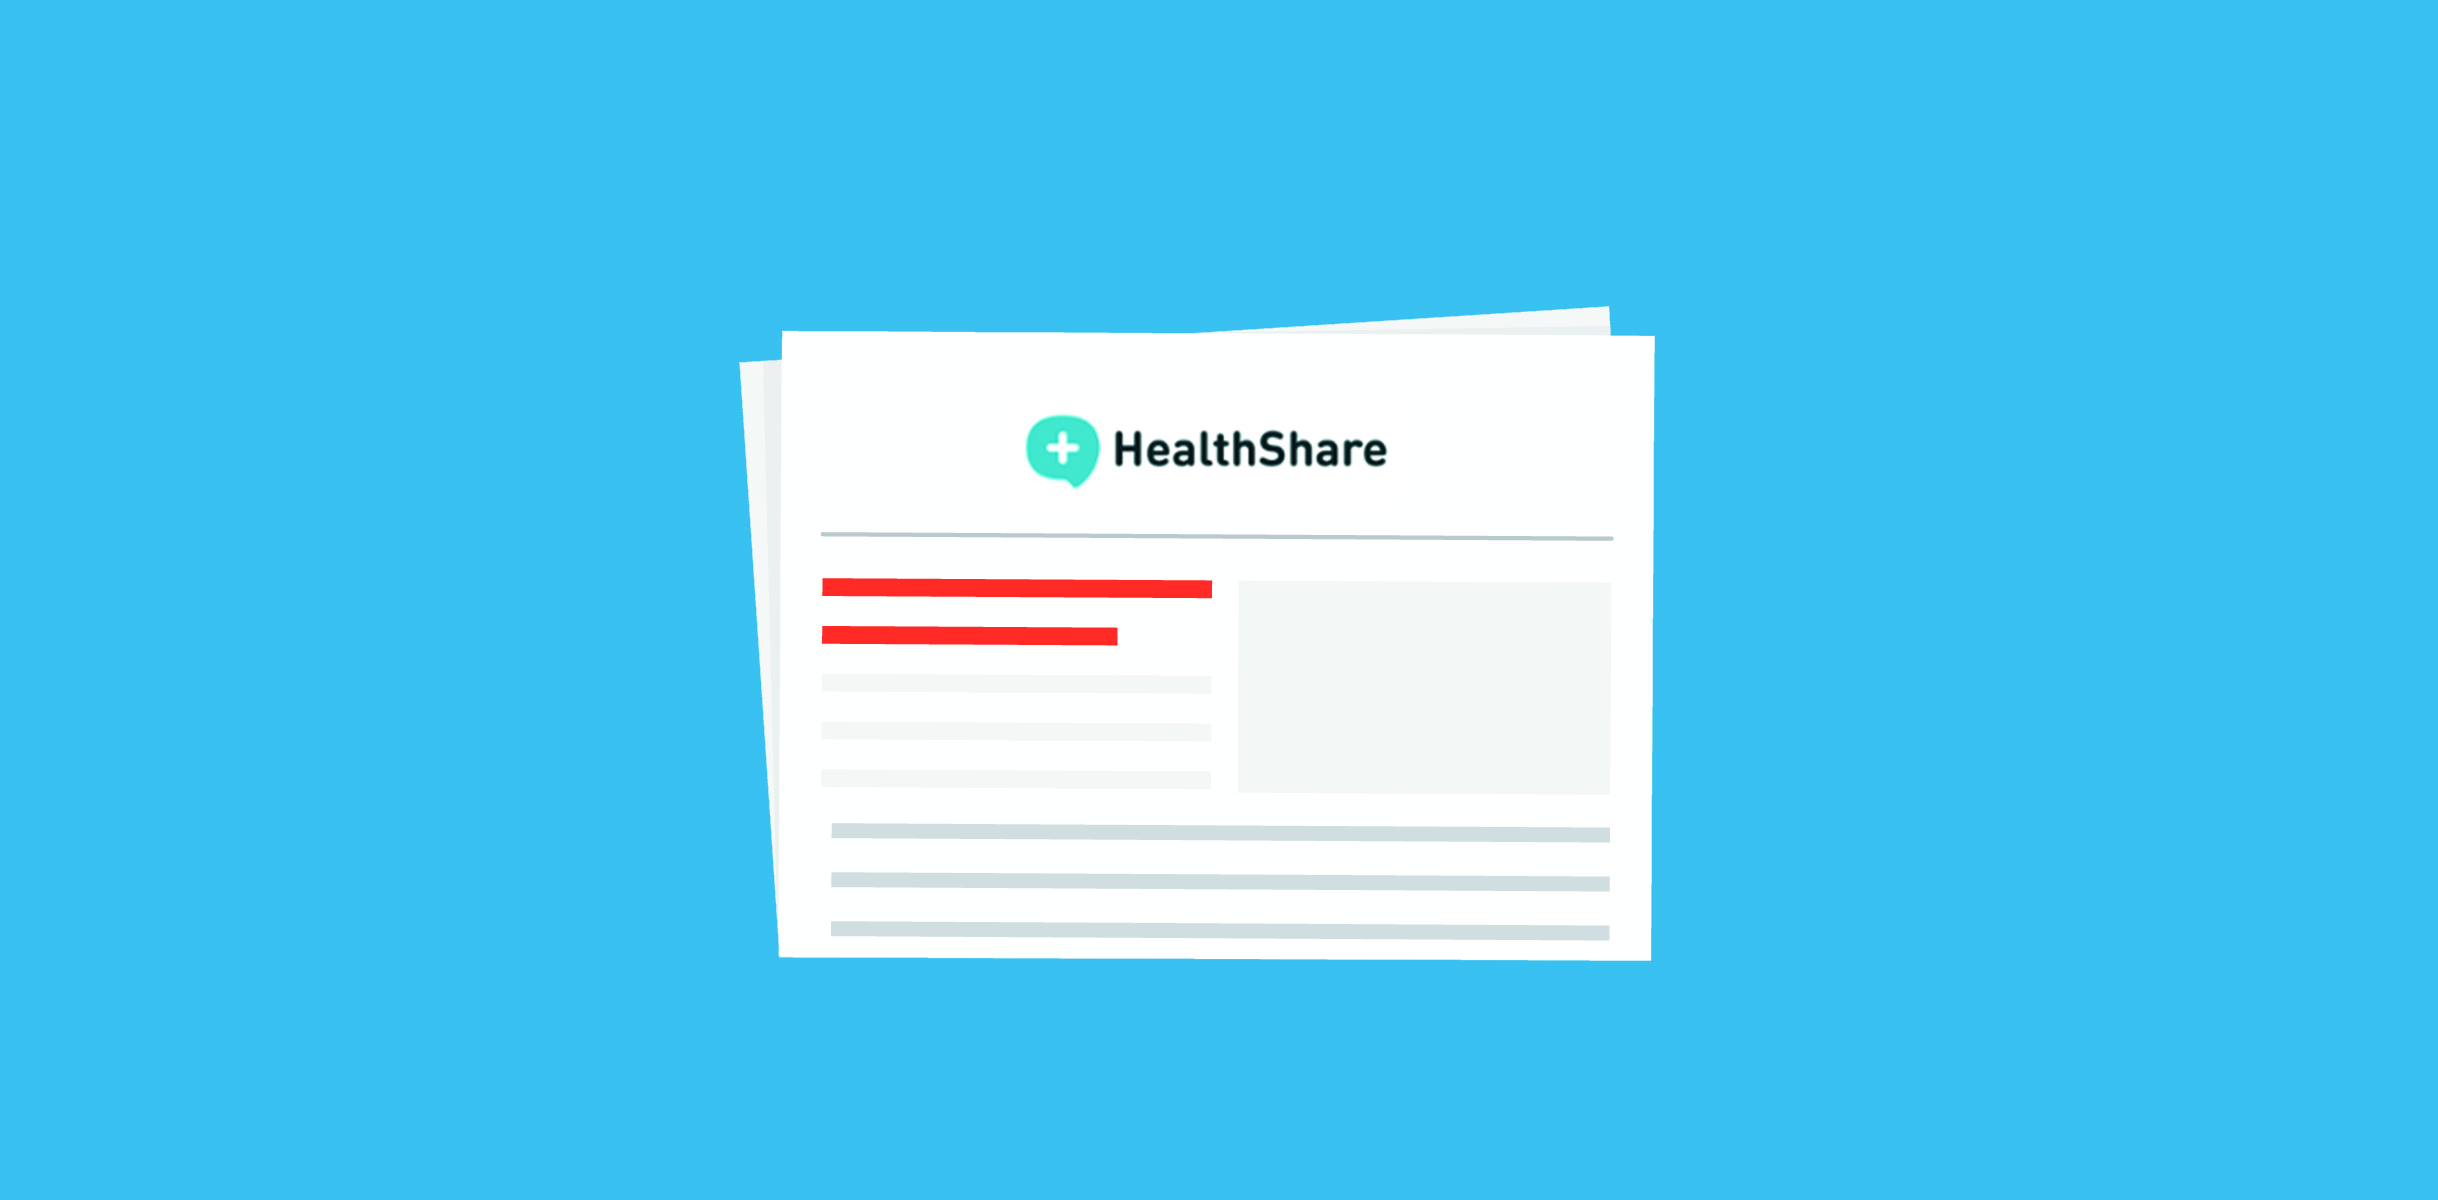 Social media website, HealthShare, launches